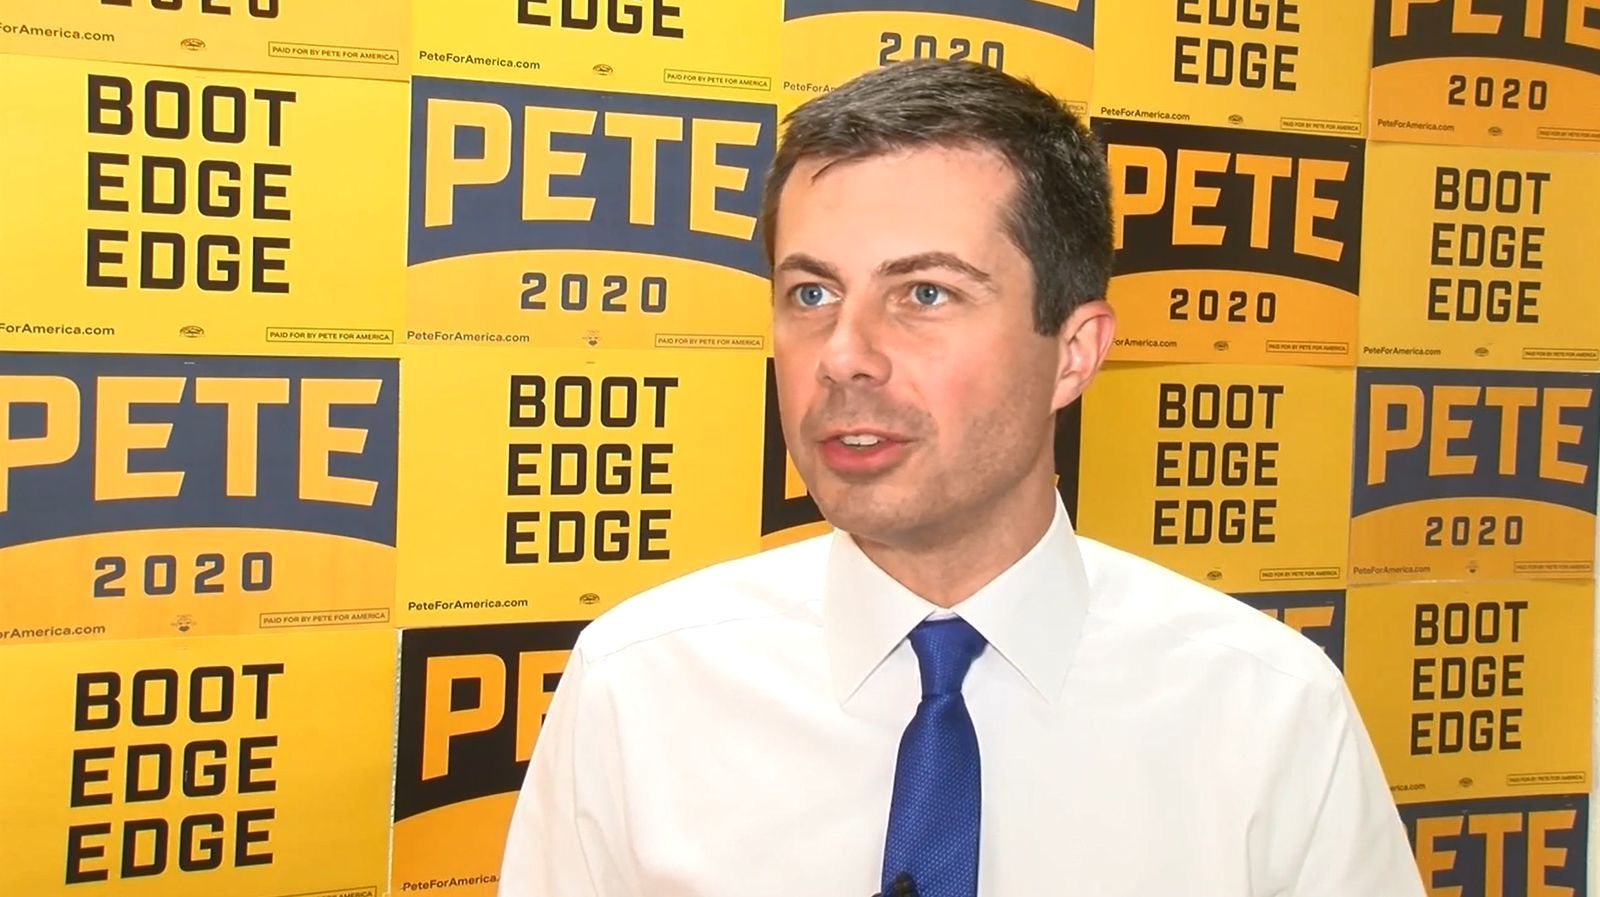 Democratic candidate and South Bend, Ind. Mayor Pete Buttigieg gives an exclusive interview to KSNV during a campaign stop in Nevada. (Image: KSNV)